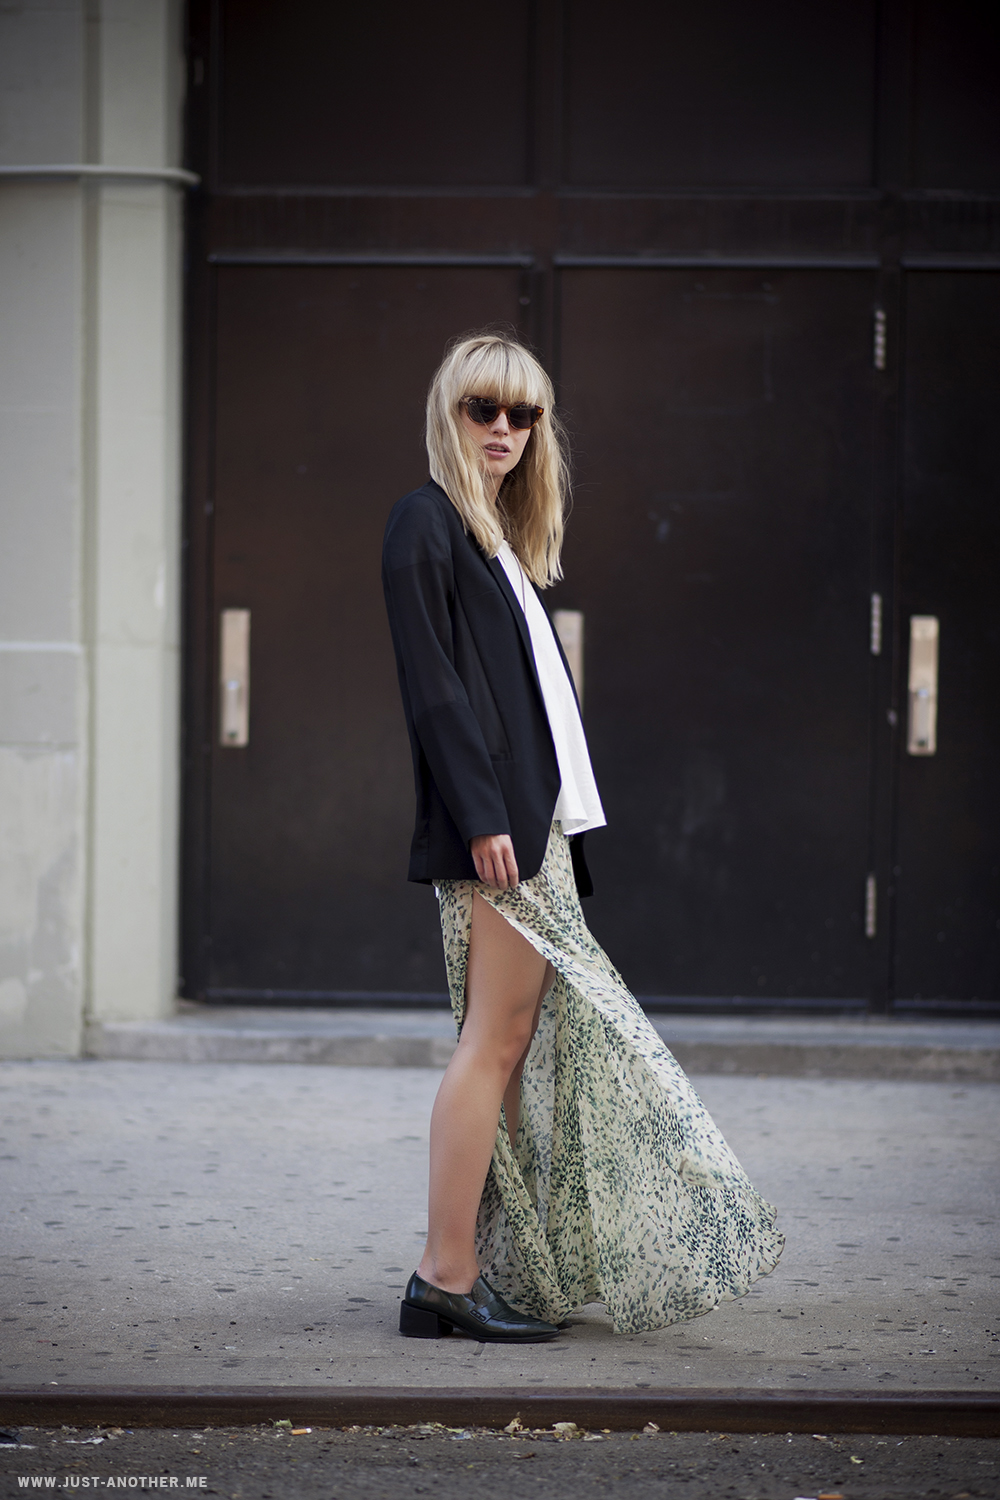 MAXI IN NYC | Just Another Fashion Blog